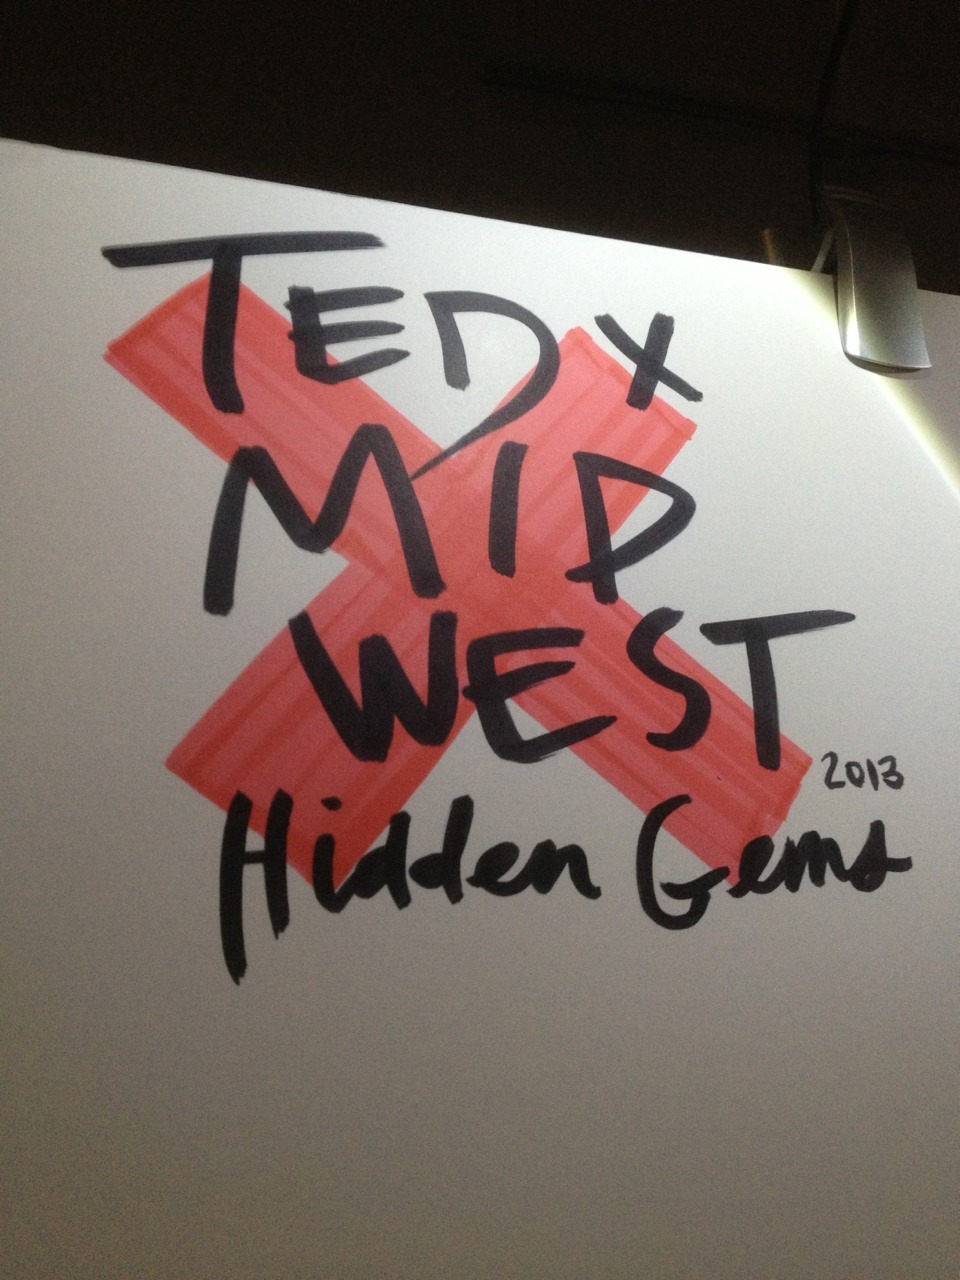 "I'm visualizing all of the ideas at TEDxMidwest this week. 33 speakers over 2 days will turn into 6 massive ""pages"" of sketchnotes, which you'll be seeing here shortly. To see some teasers from the day, pop on over to @craightonberman on Twitter."